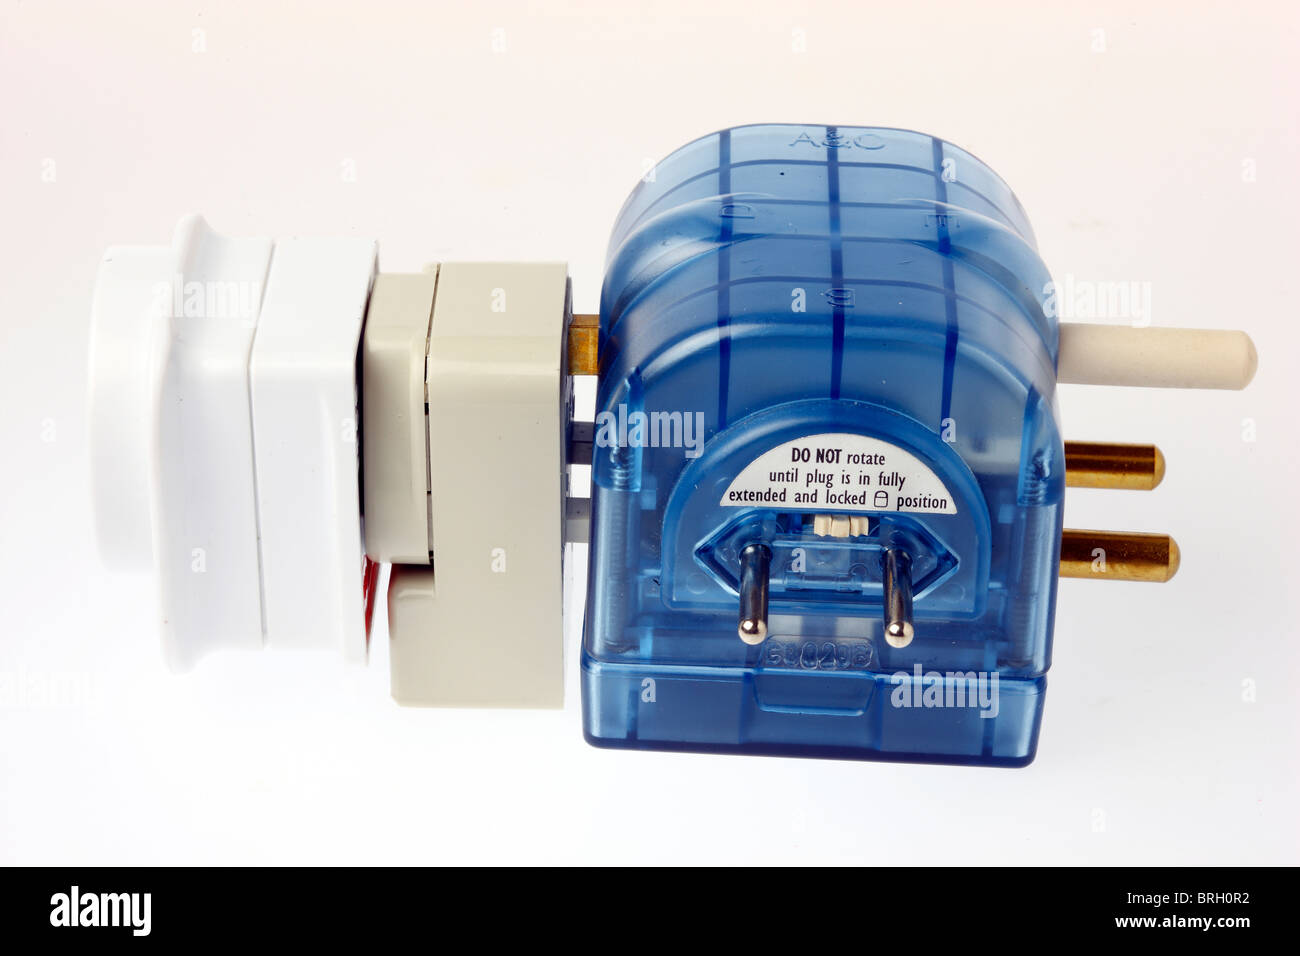 Plug Adapter Stock Photos Images Alamy Wiring Up A French Power And Socket For Connecting Different Electrical Systems Travel Equipment